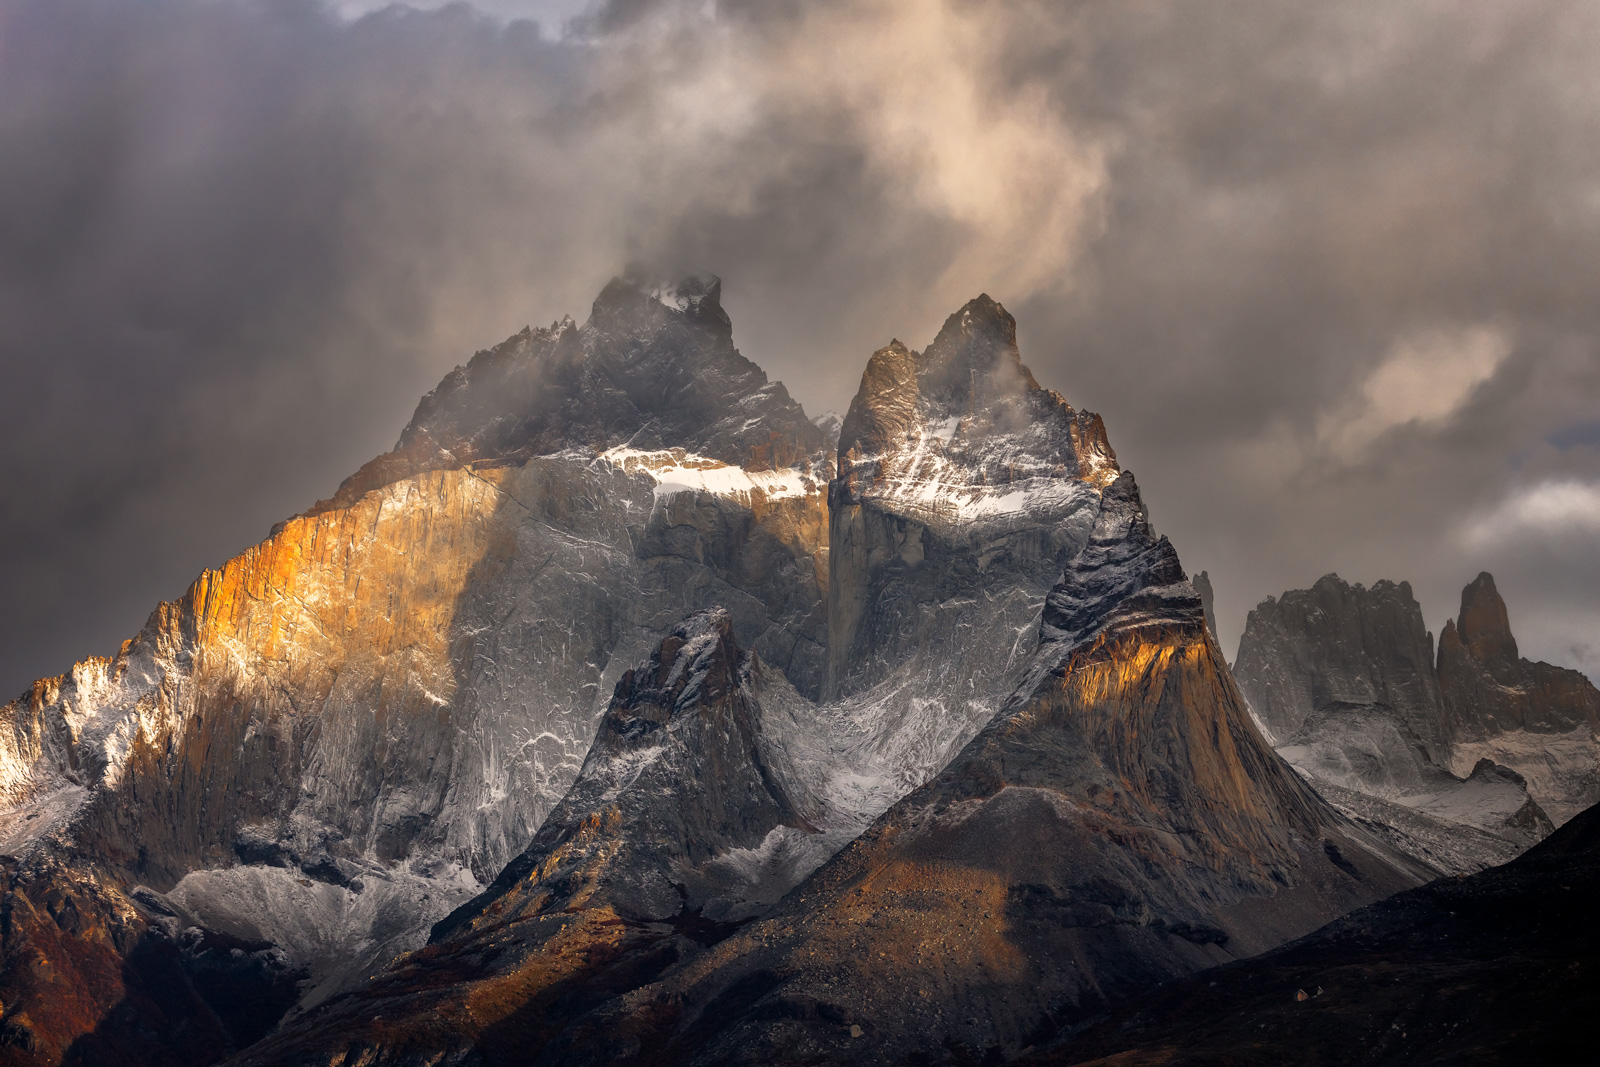 A Limited Edition, Fine Art photograph of dramatic storm clouds surrounding the stormy peaks of the mountains of Torres del Paine...